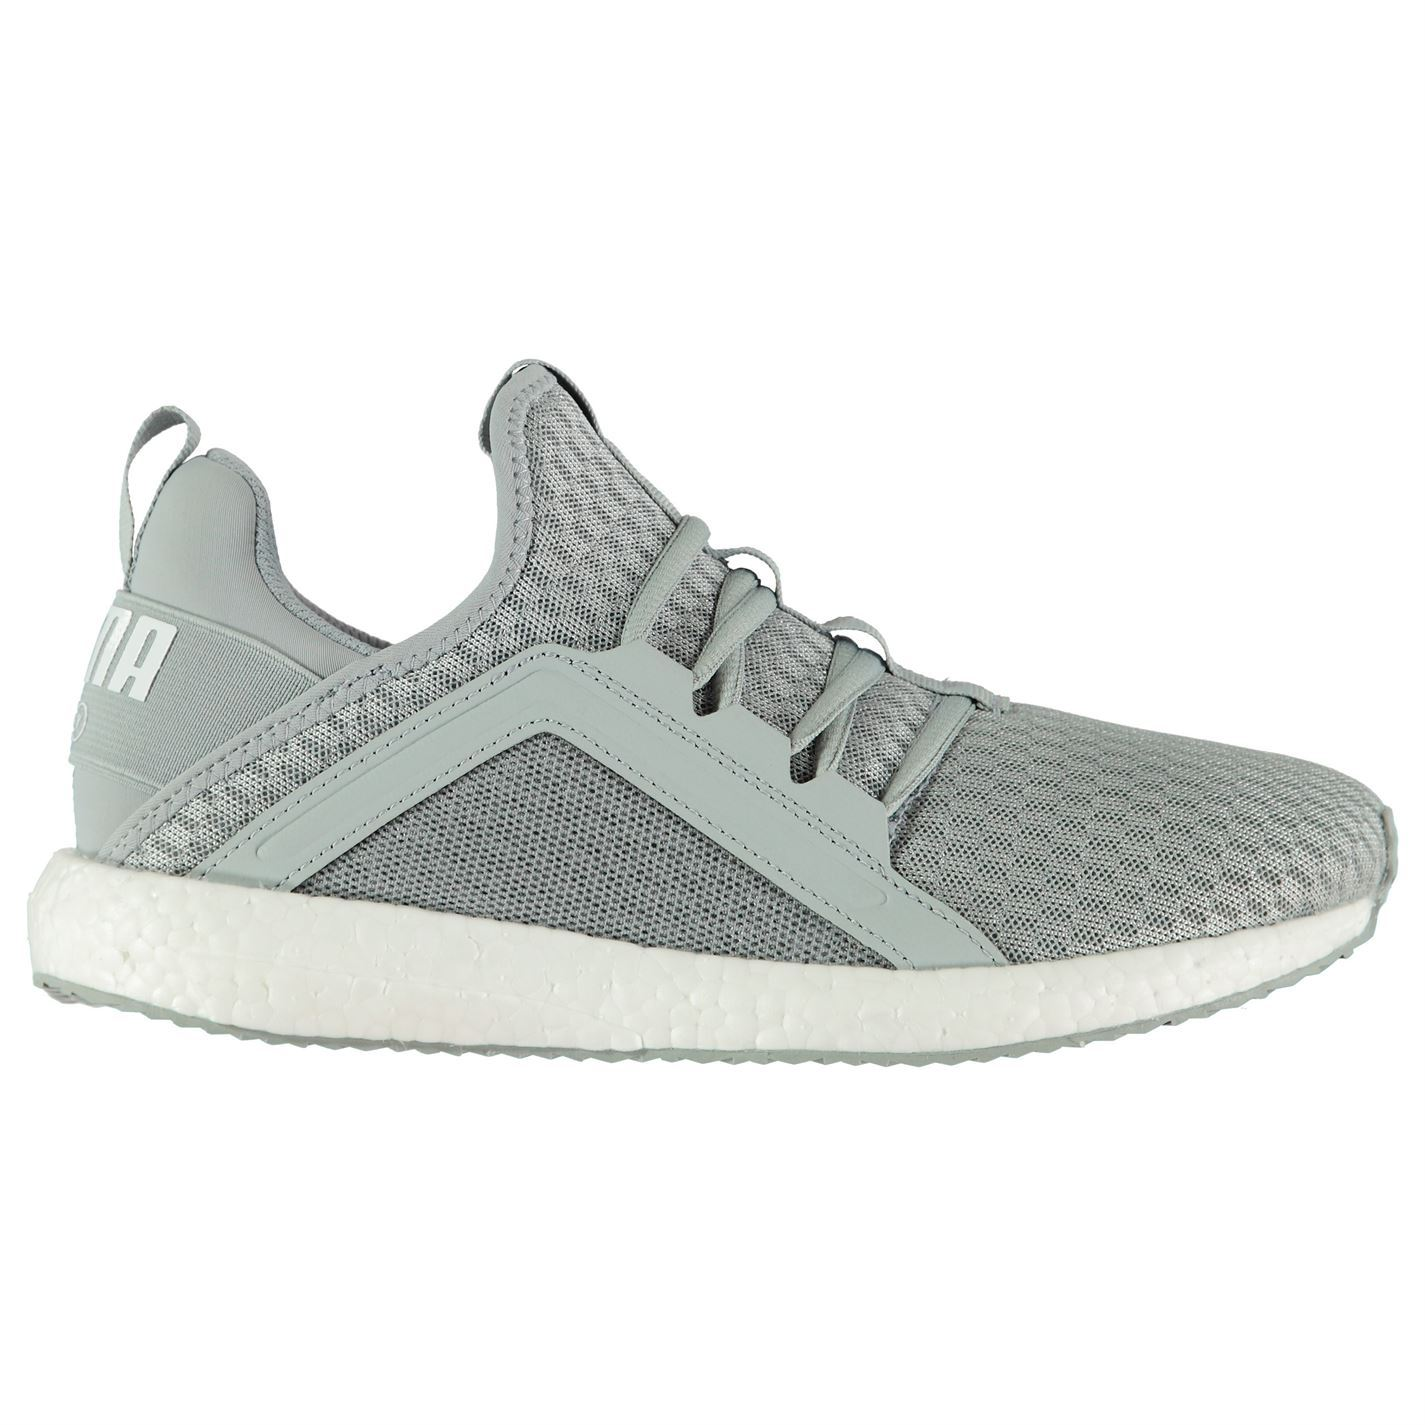 ... Puma Mega NRGY Running Shoes Womens Grey Run Jogging Trainers Sneakers  ... e94e01172